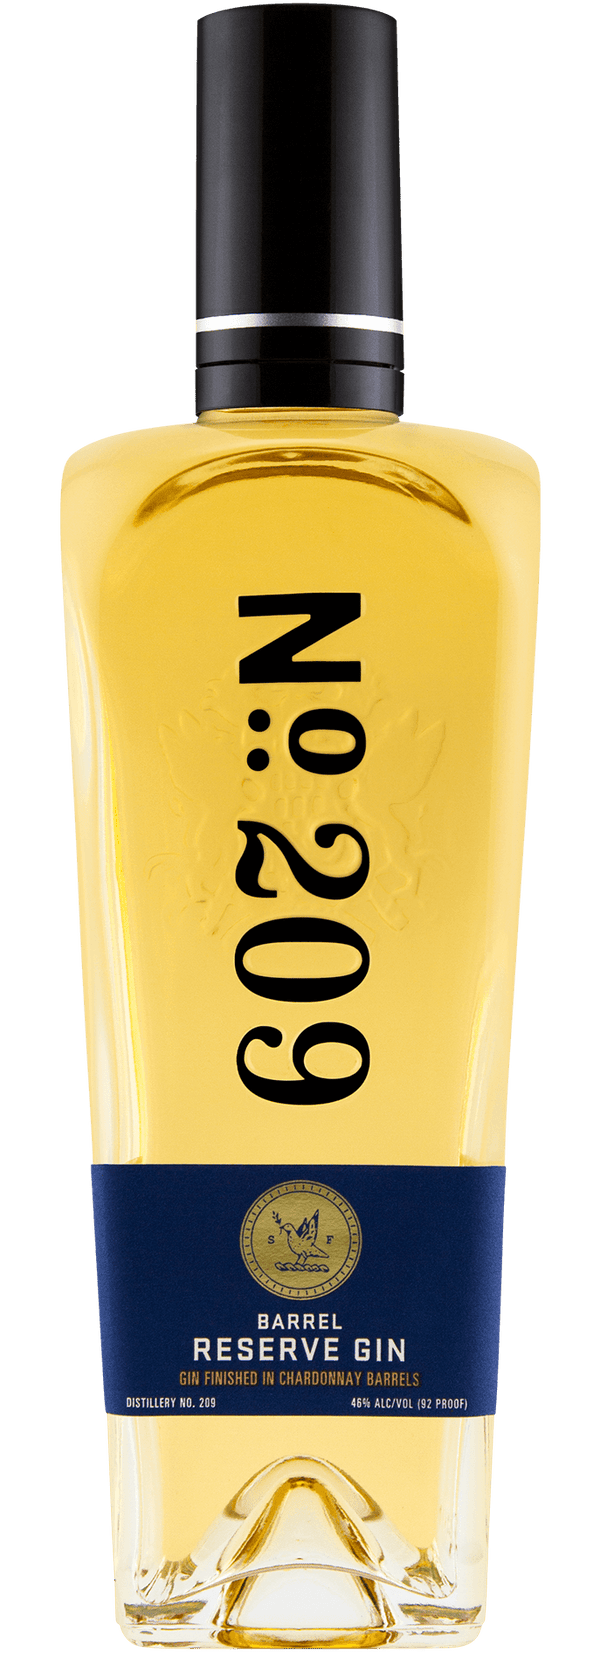 No. 209 Chardonnay Barrel Reserve Gin - Available at Wooden Cork